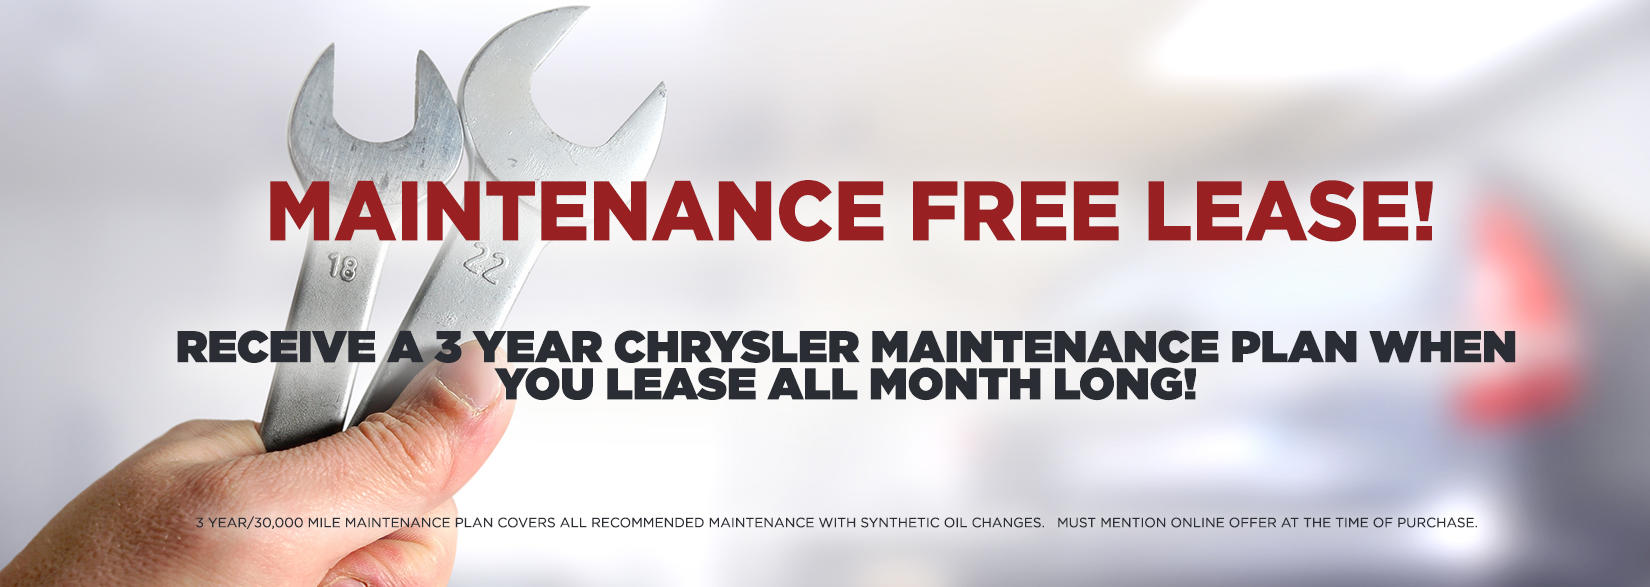 Maintenance Free Lease